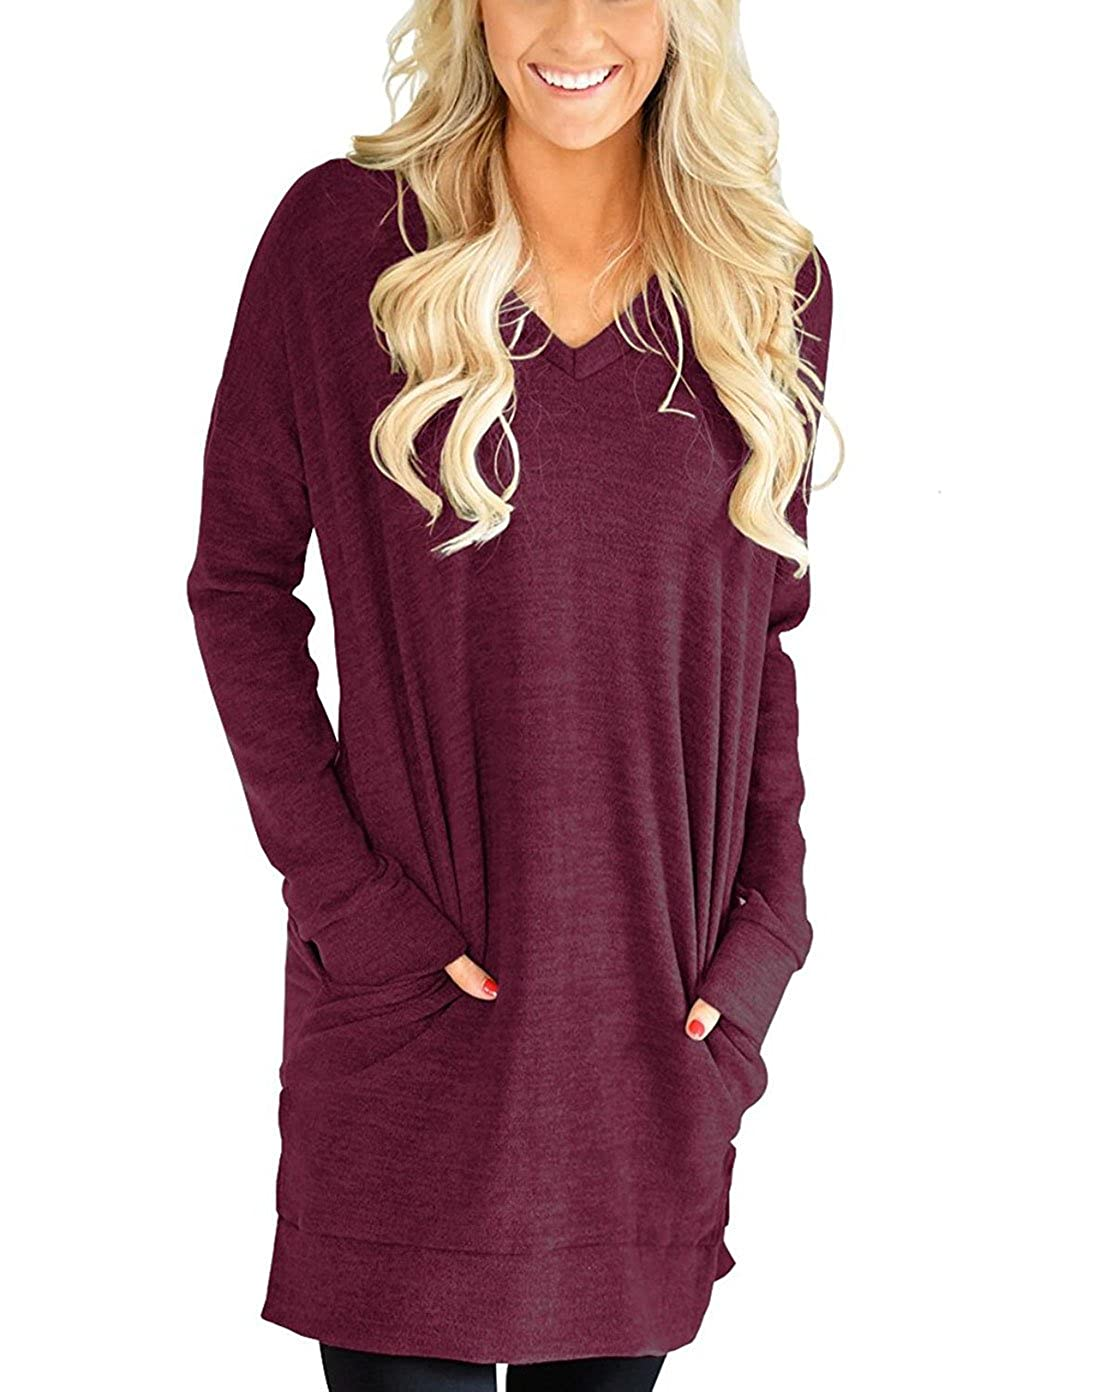 Women's Casual V-Neck Long Sleeves Tunic Blouse Tops Shirts Sweatshirt With Pockets